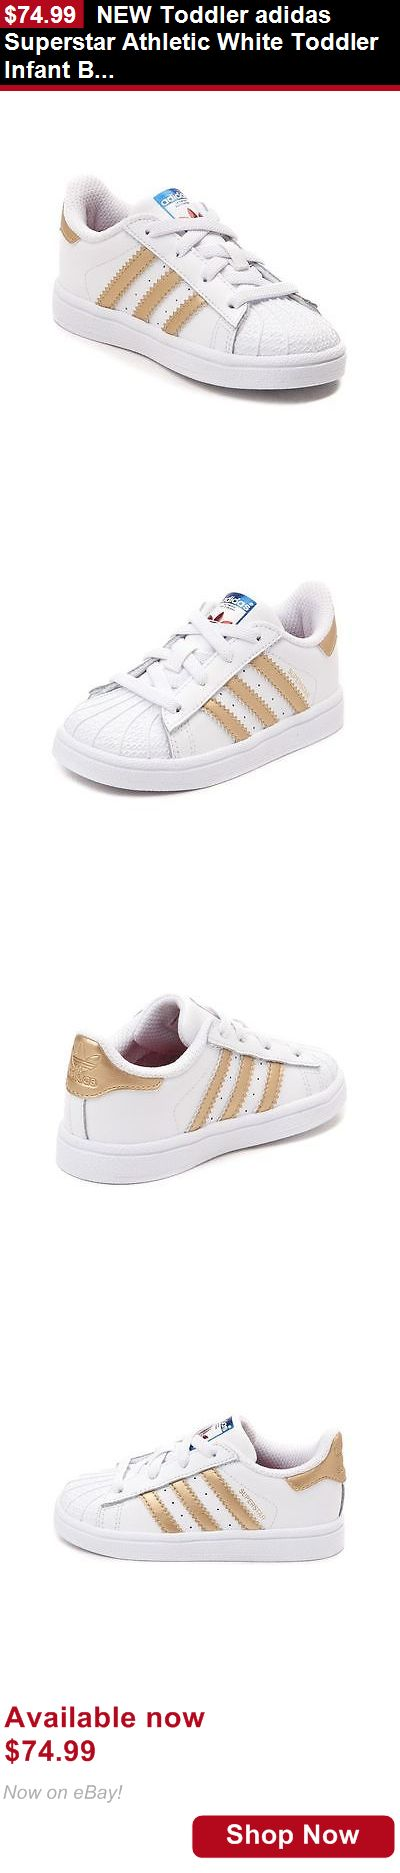 Baby boys clothing shoes and accessories: New Toddler Adidas Superstar Athletic White Toddler Infant Boys Girl Shoe Gold BUY IT NOW ONLY: $74.99